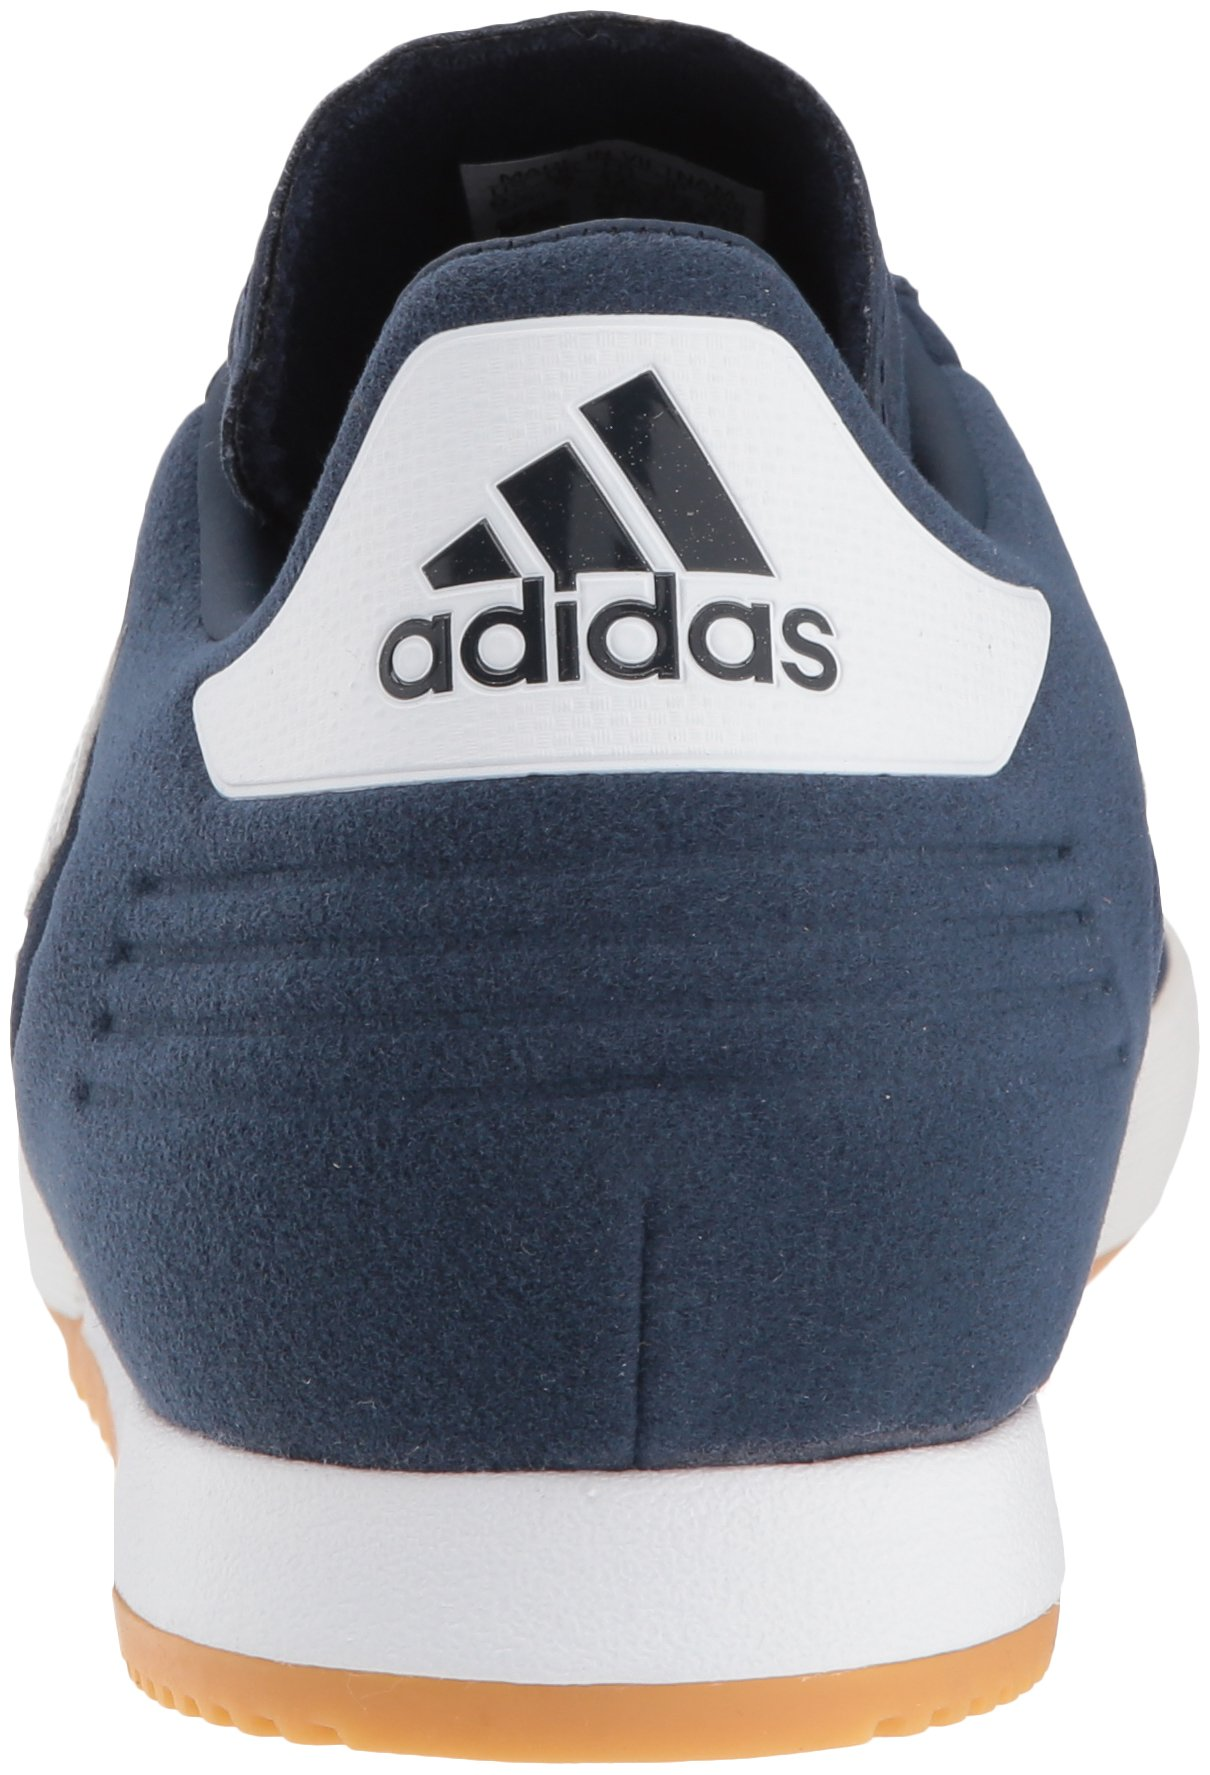 adidas Men's Copa Super Soccer Shoe White/Collegiate Navy, 7 M US by adidas (Image #2)